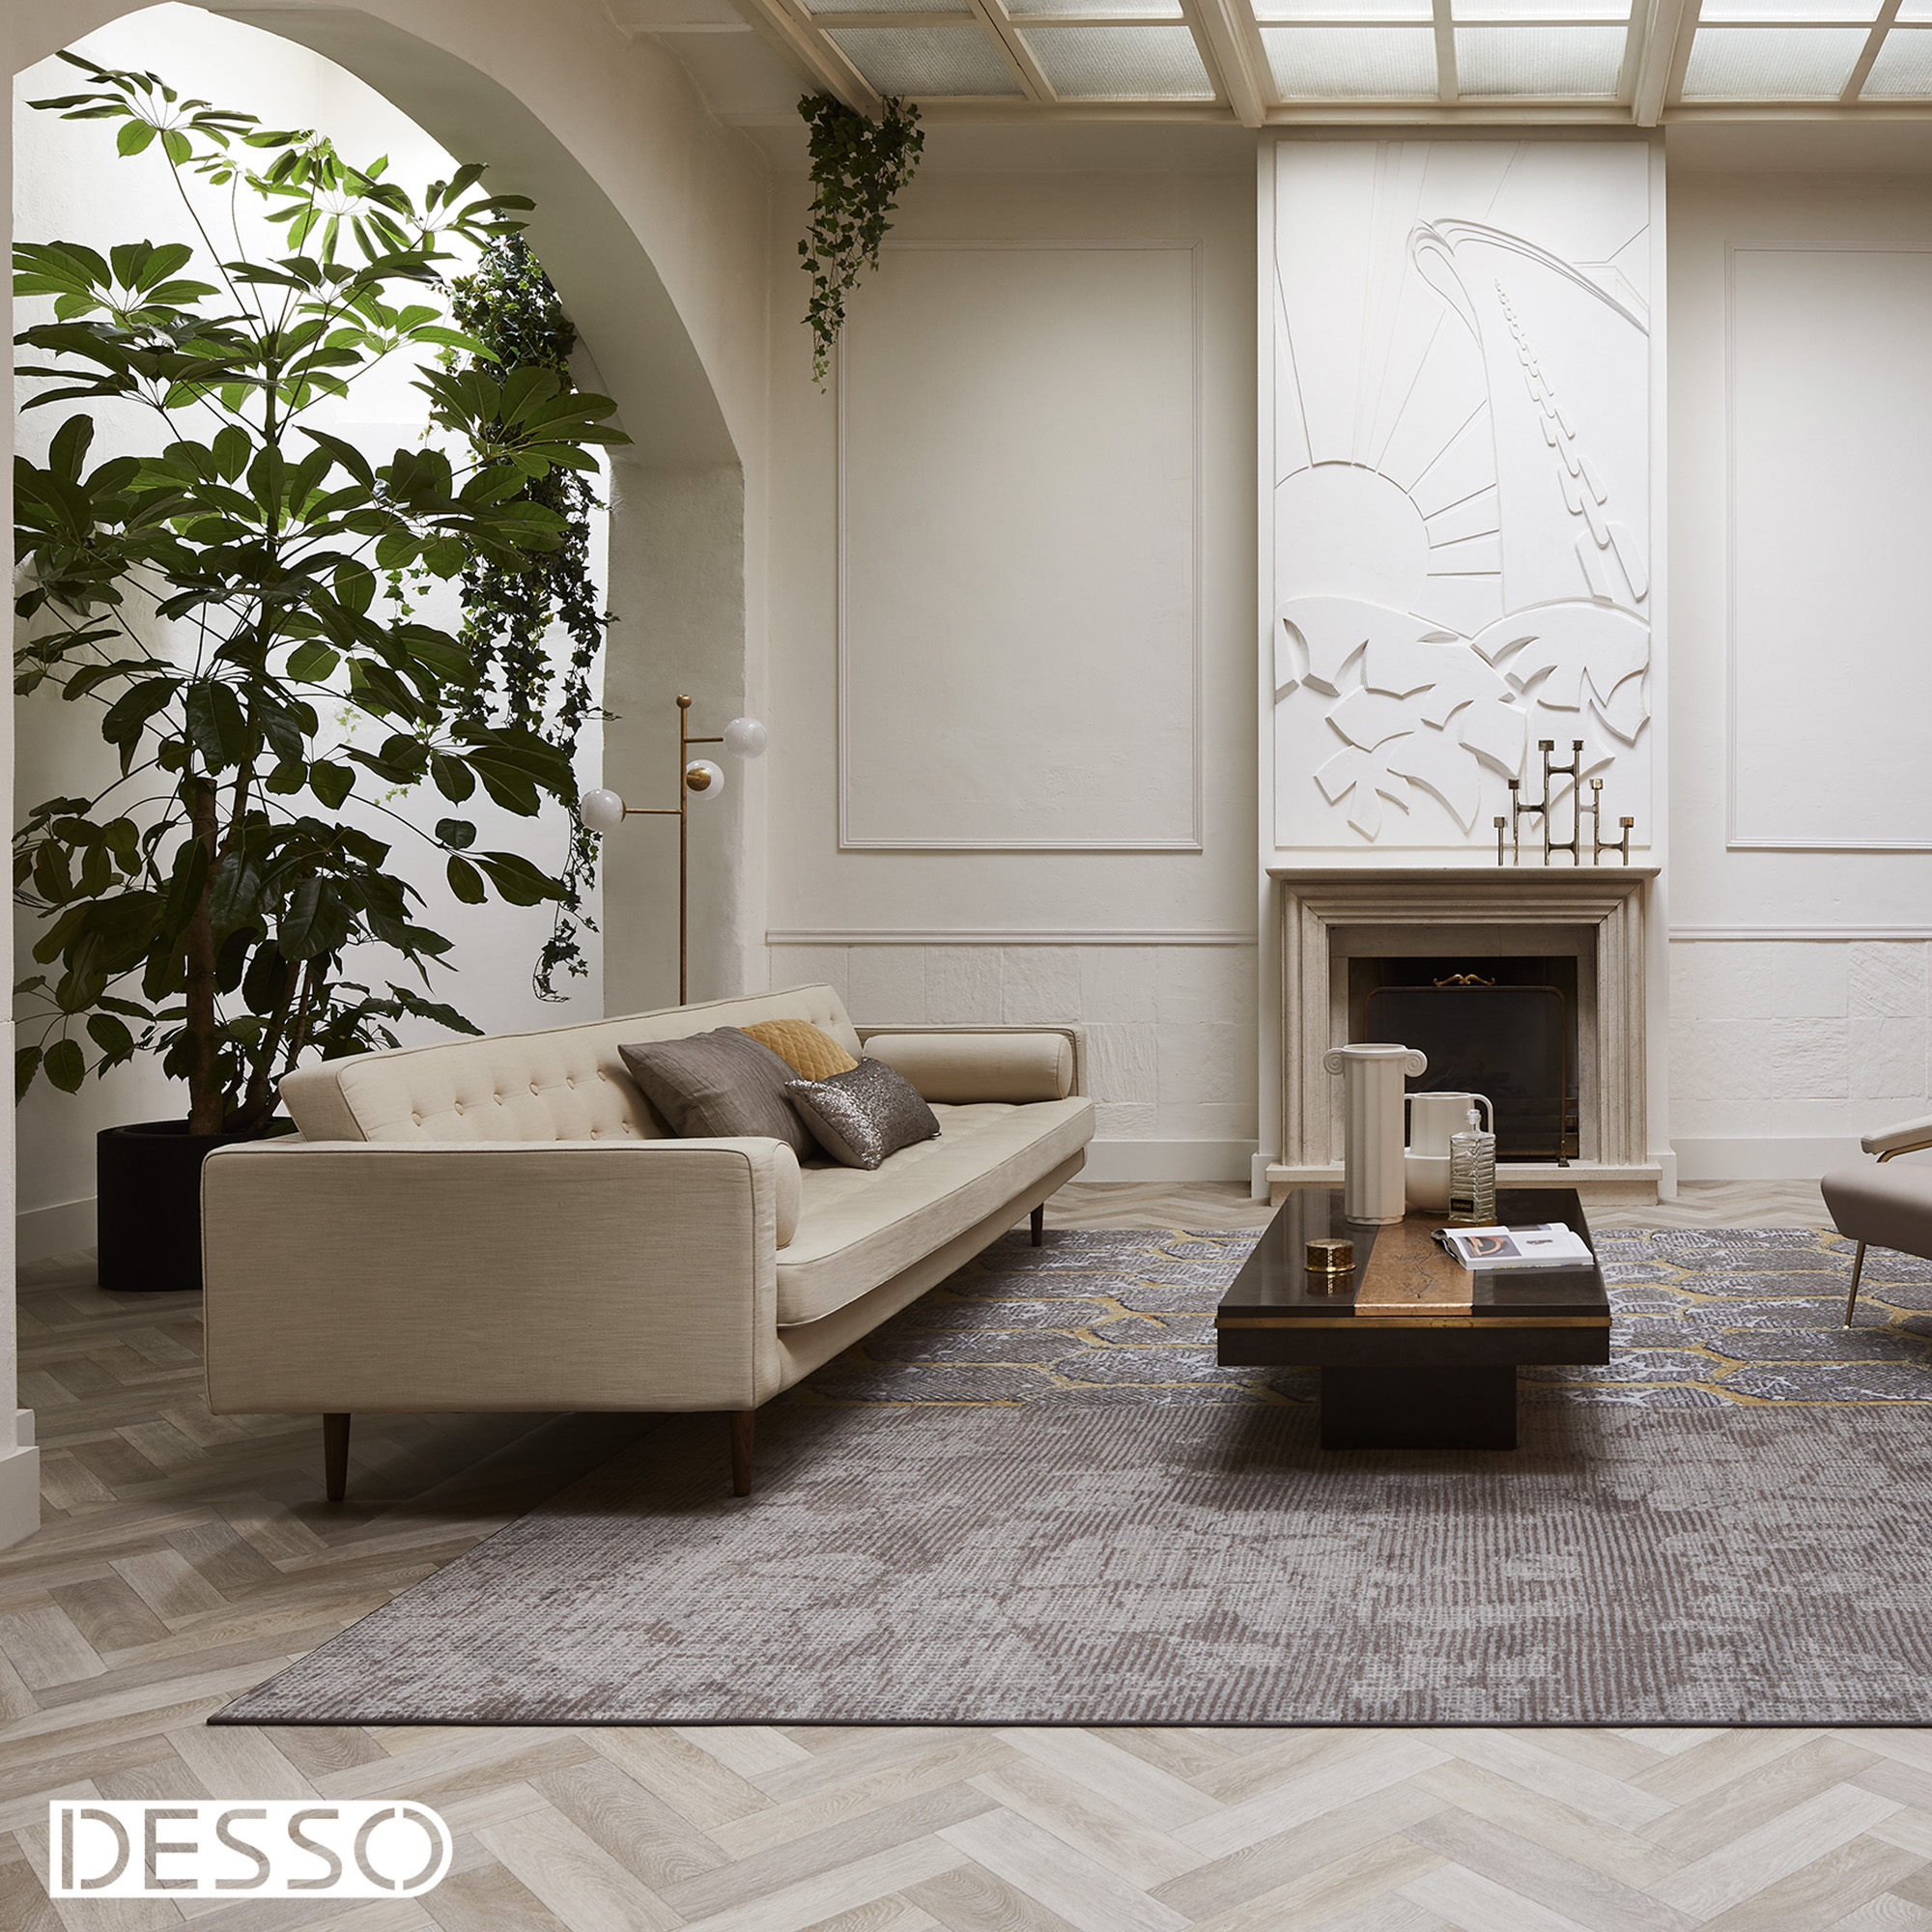 Vloerkleed Desso Art Deco 9544